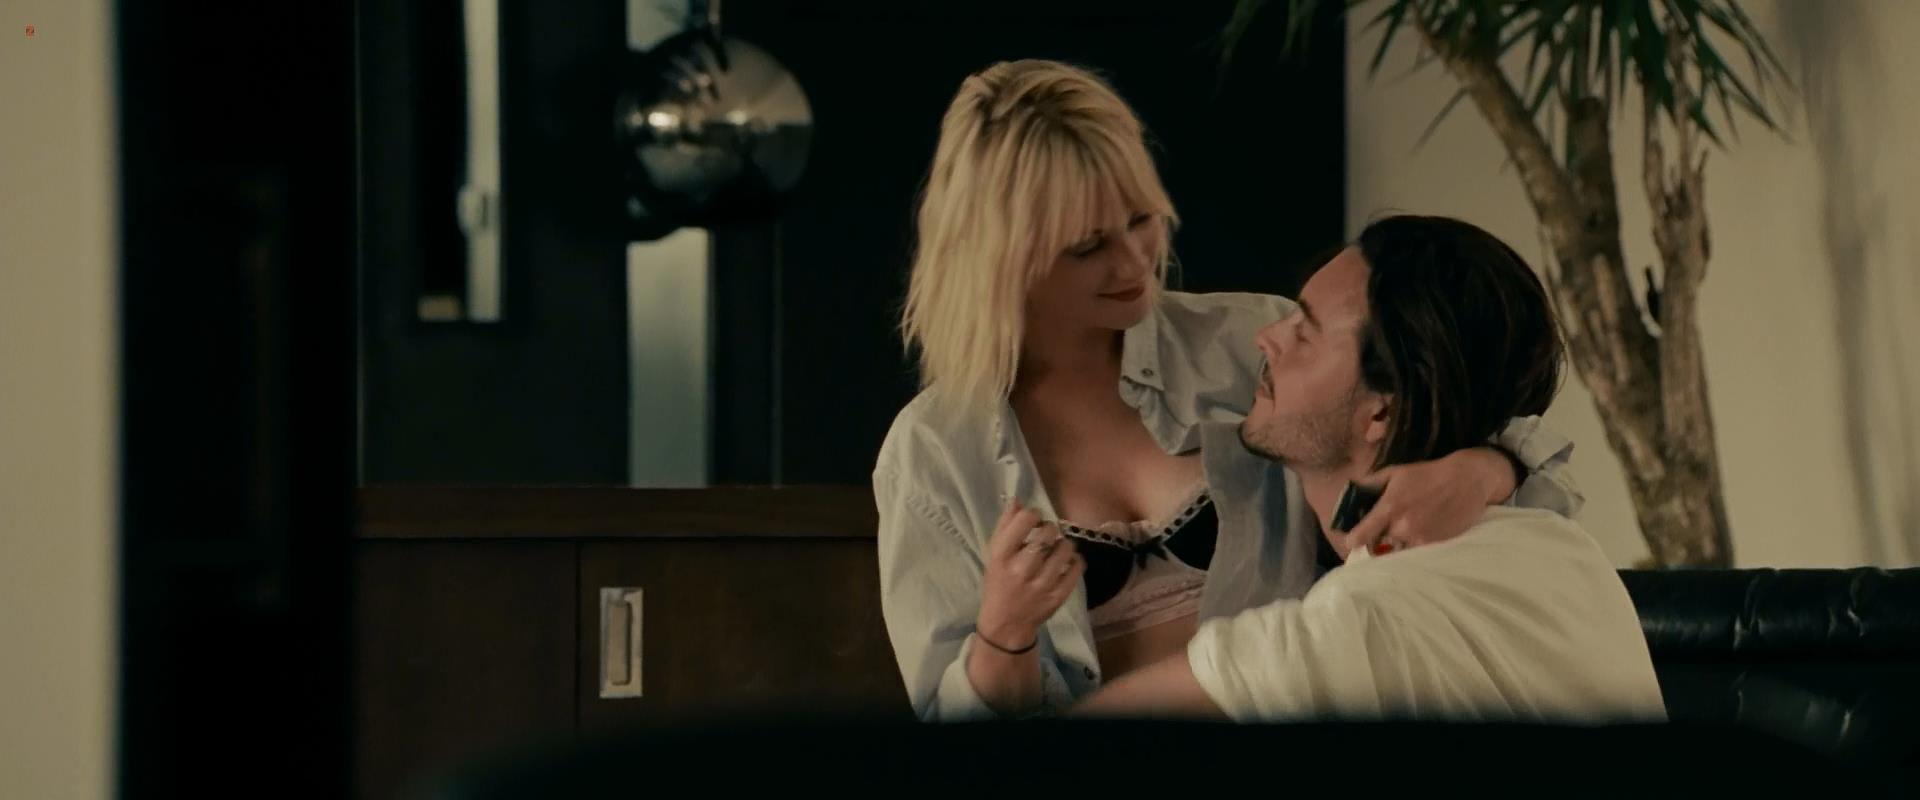 Laura Ramsey sexy and cool - Shrink (2009) hd1080p